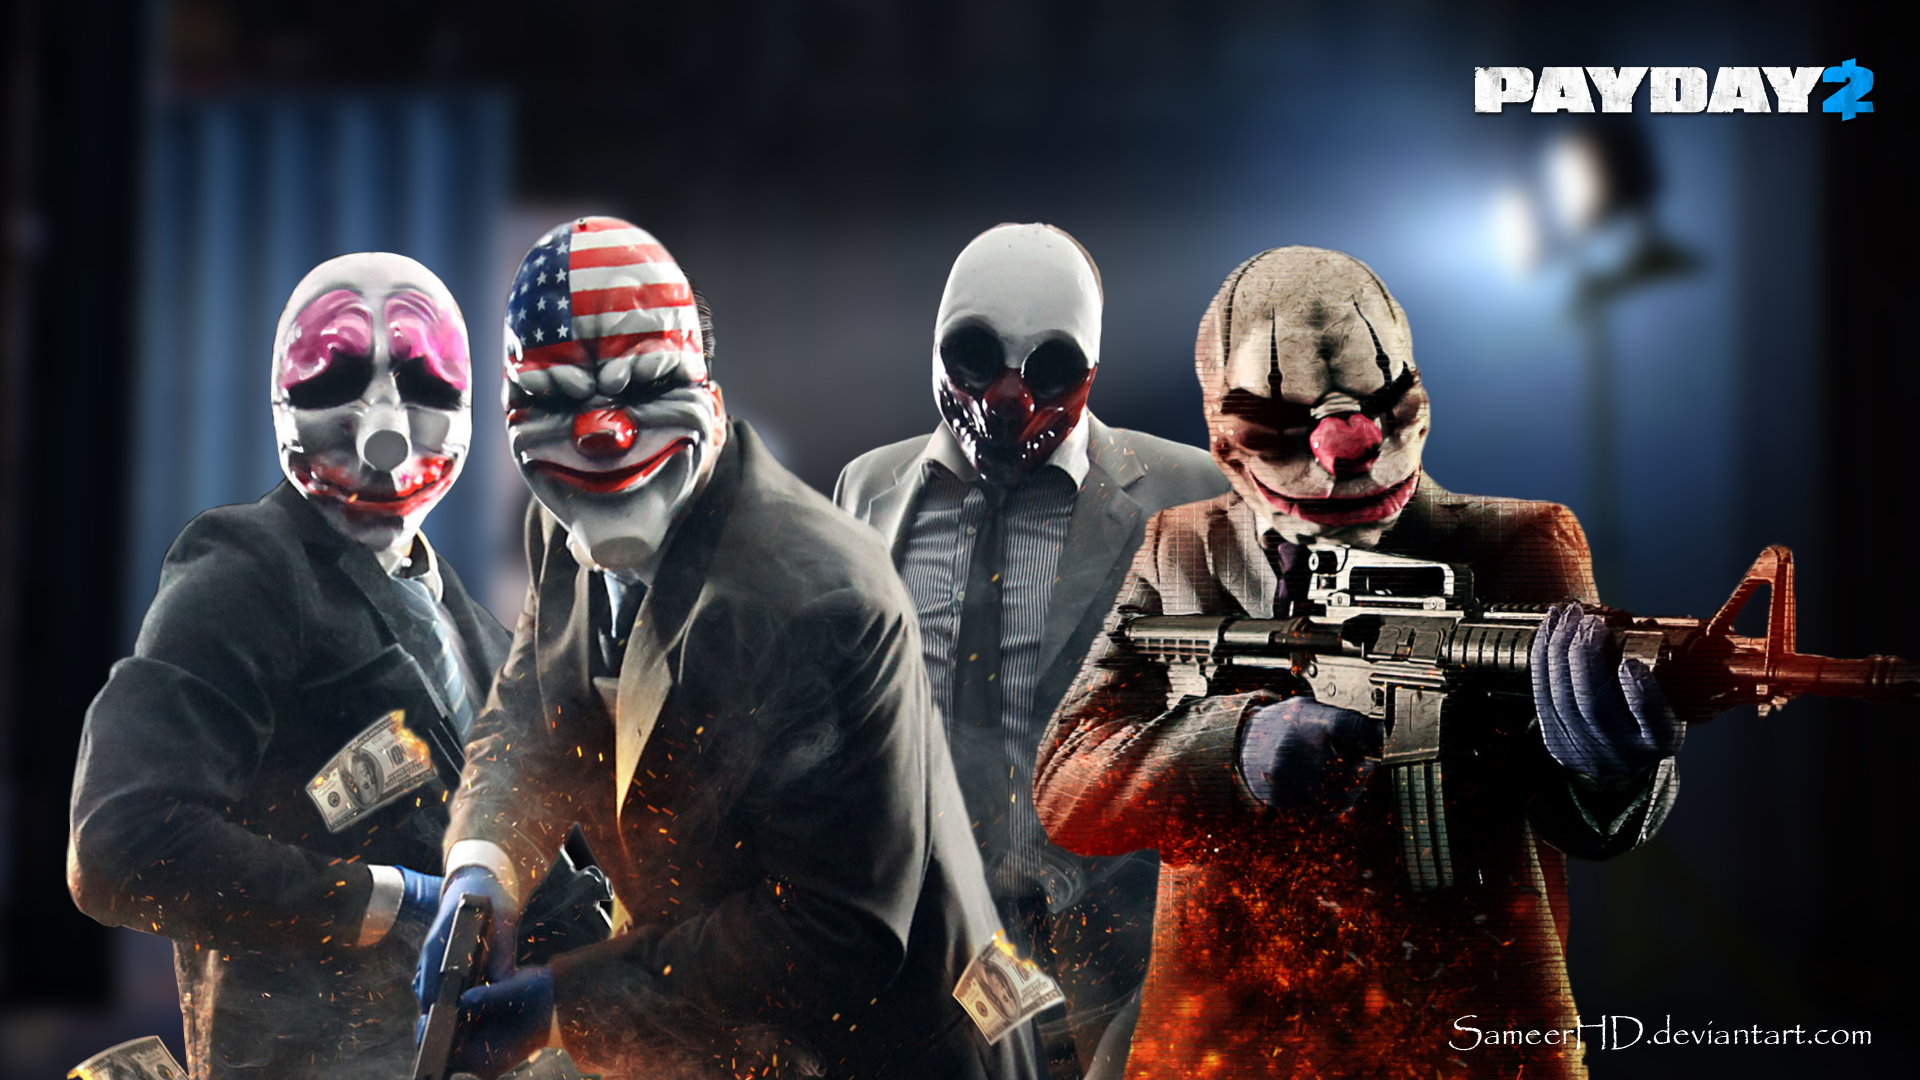 Payday 2 Hd Wallpaper 5 1920 X 1080 Stmednet Payday 2